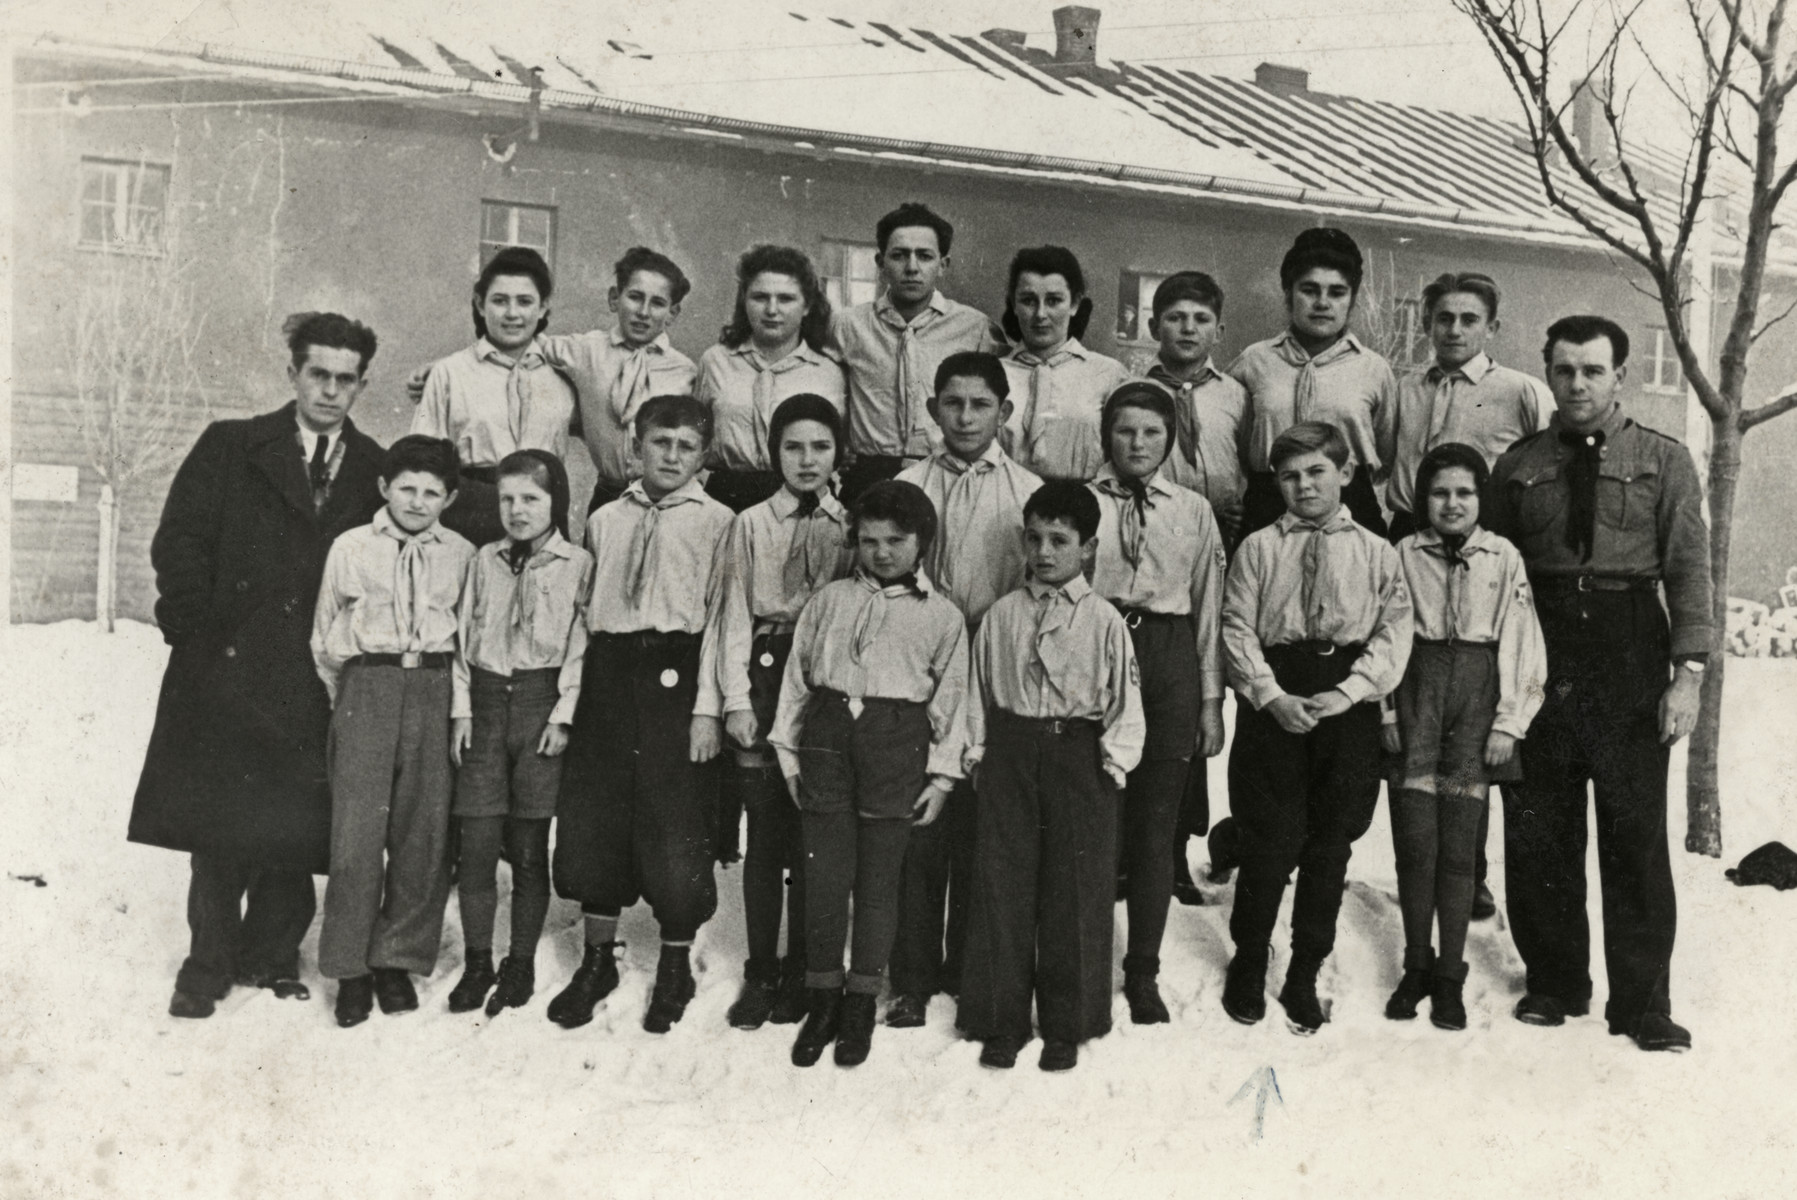 Zionist scouts stand in formation in the Bad Reichenhall displaced persons' camp.  Ziomek Hammer is standing in the first long row, second from the right.